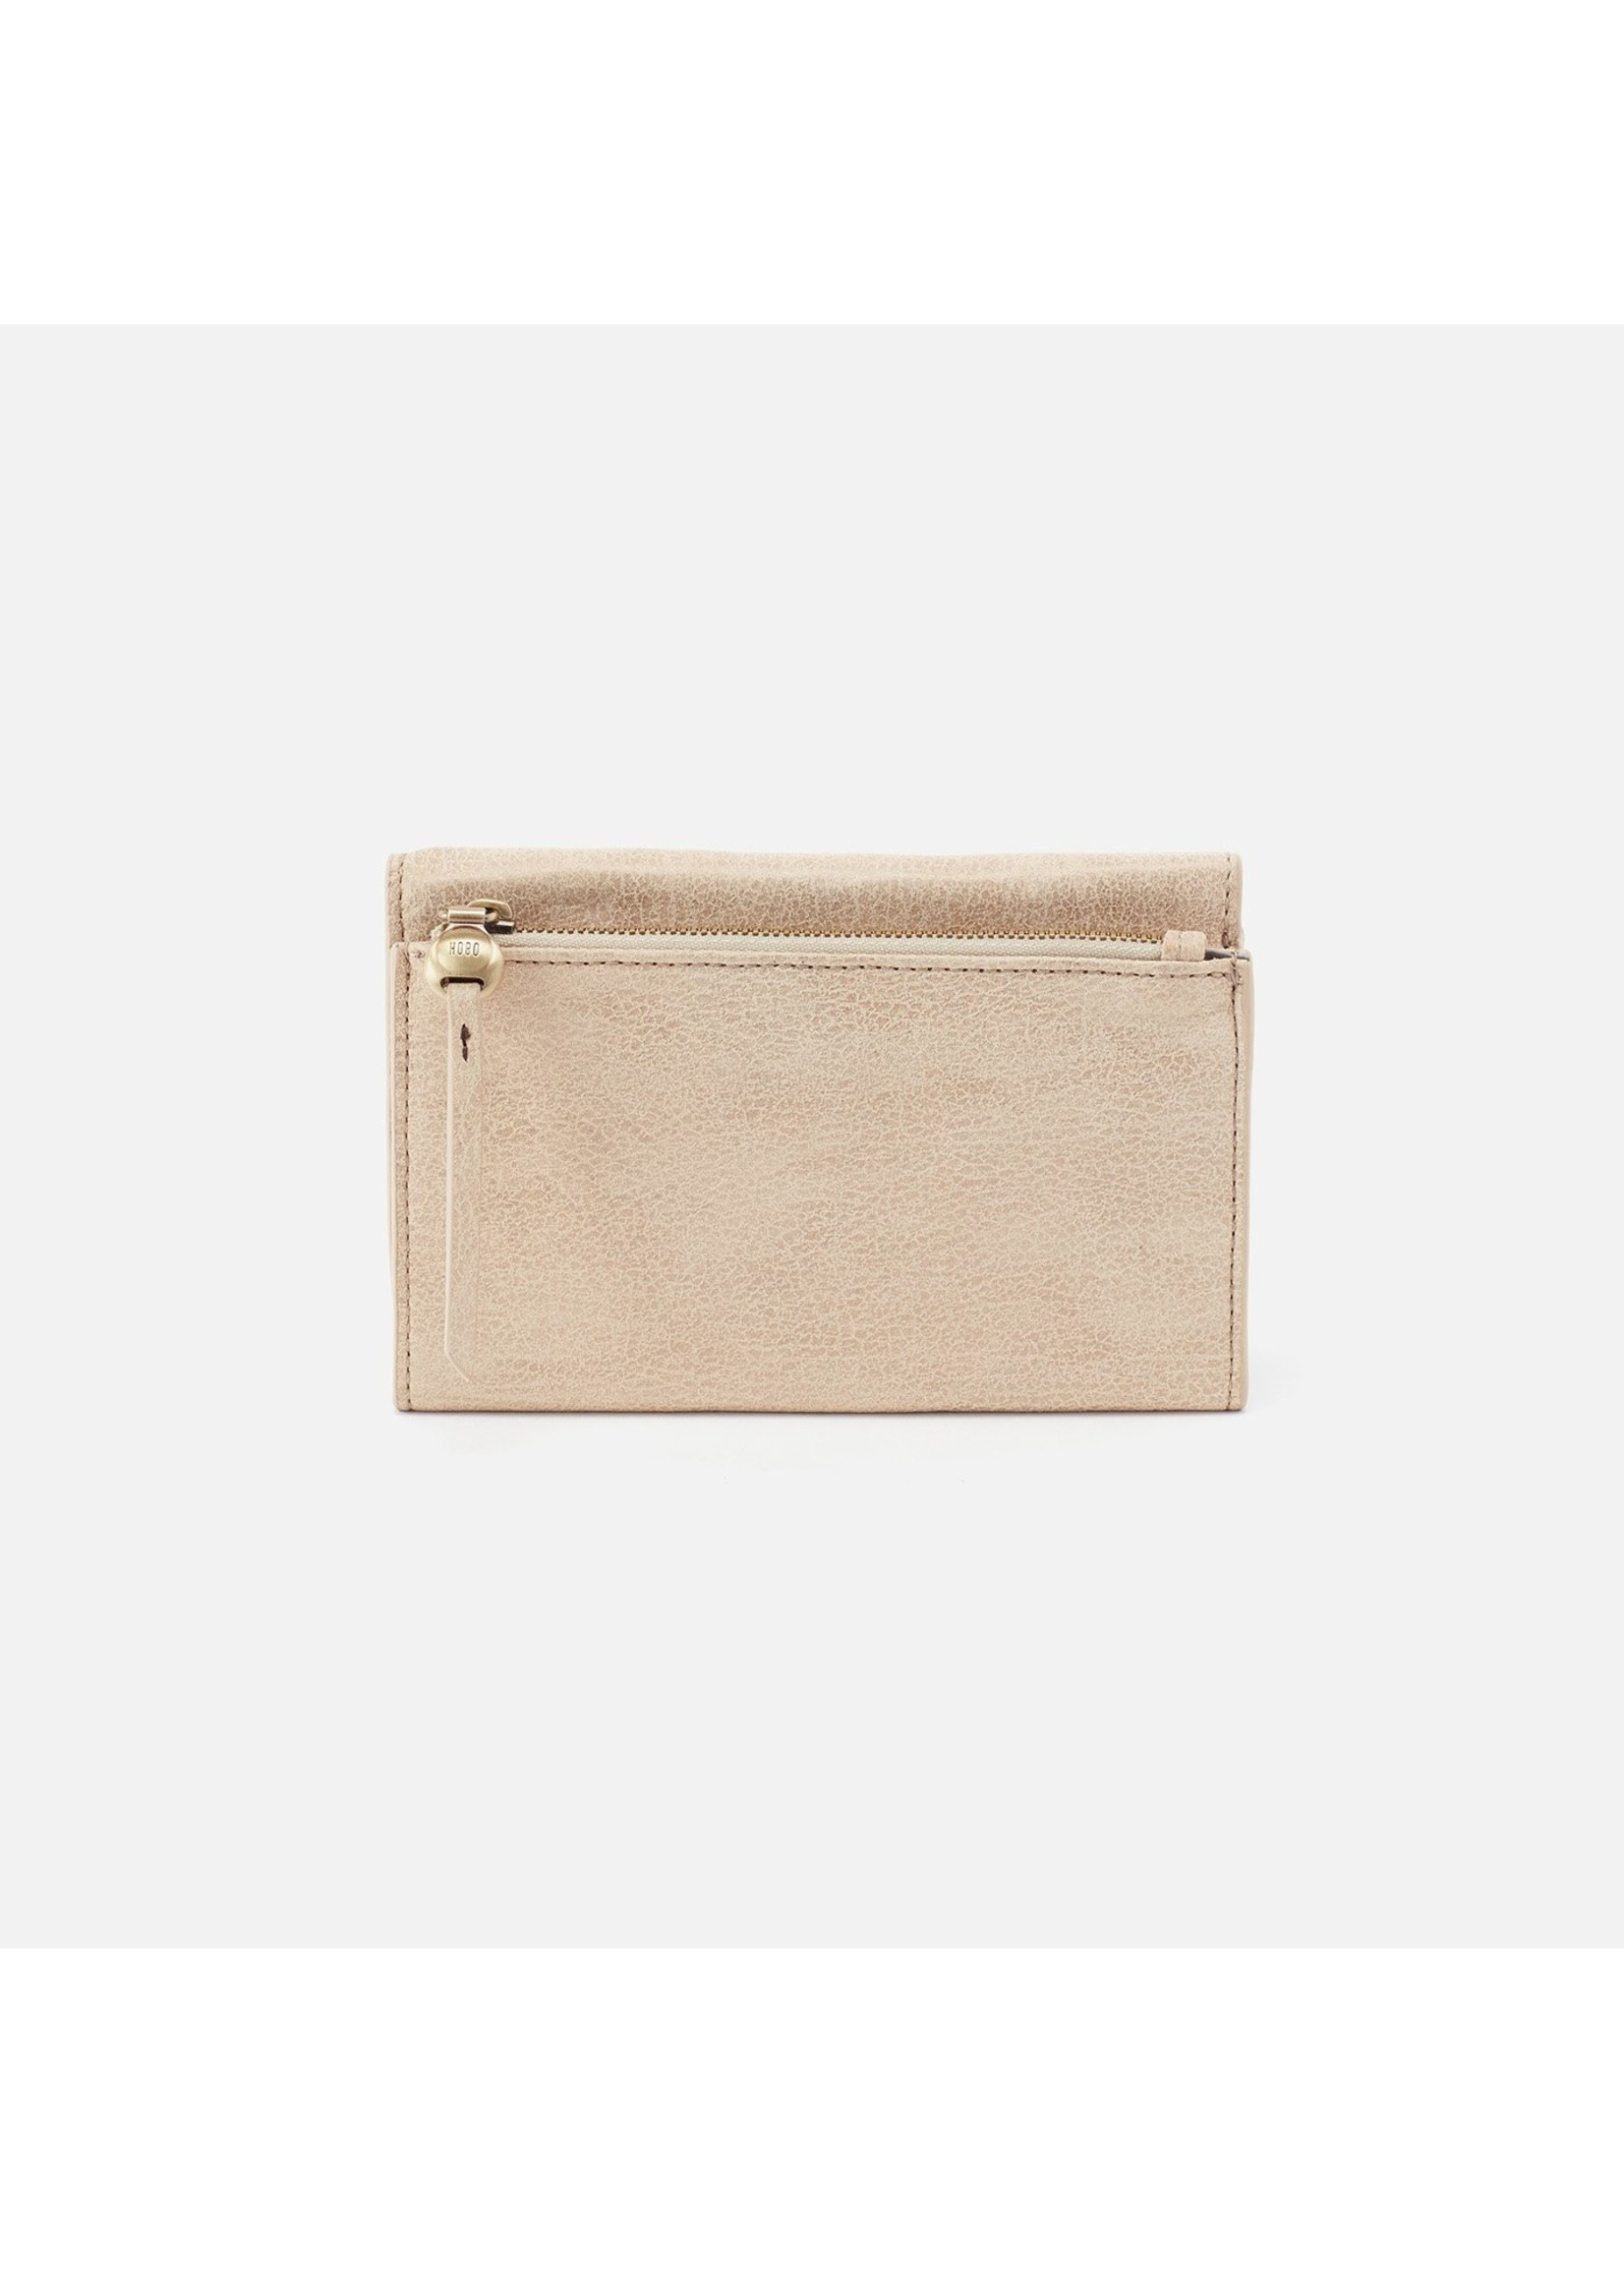 Hobo Might Trifold Wallet